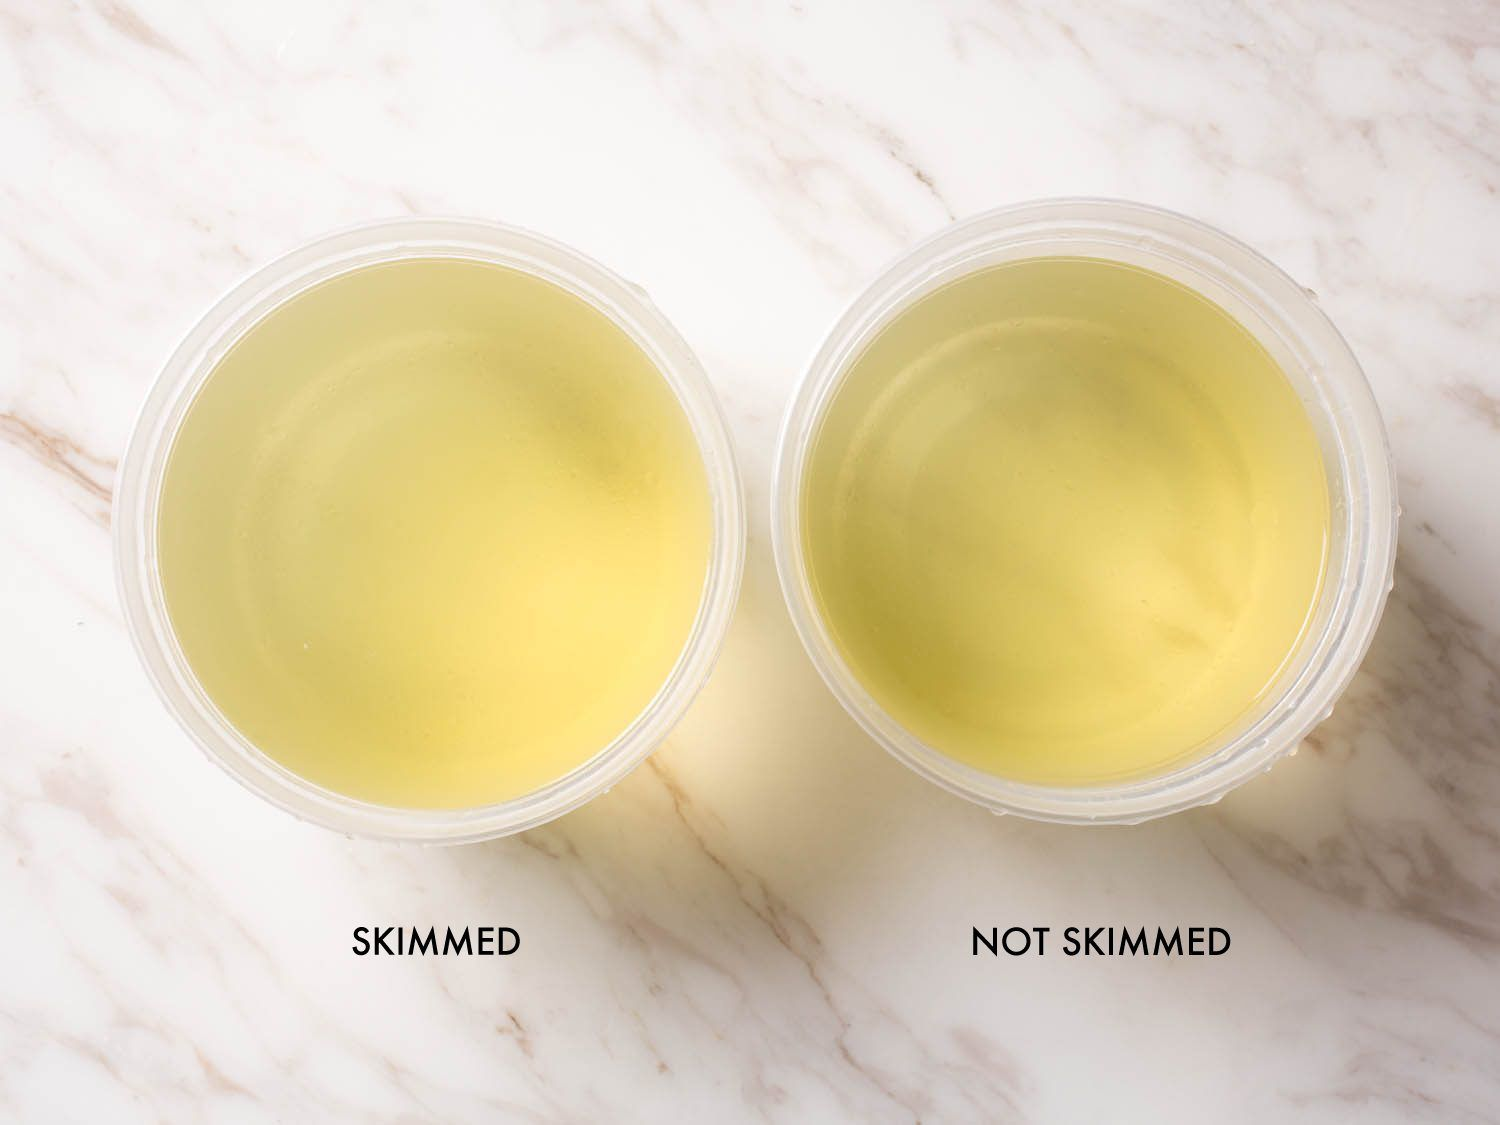 Labeled photo comparing skimmed and unskimmed stock.